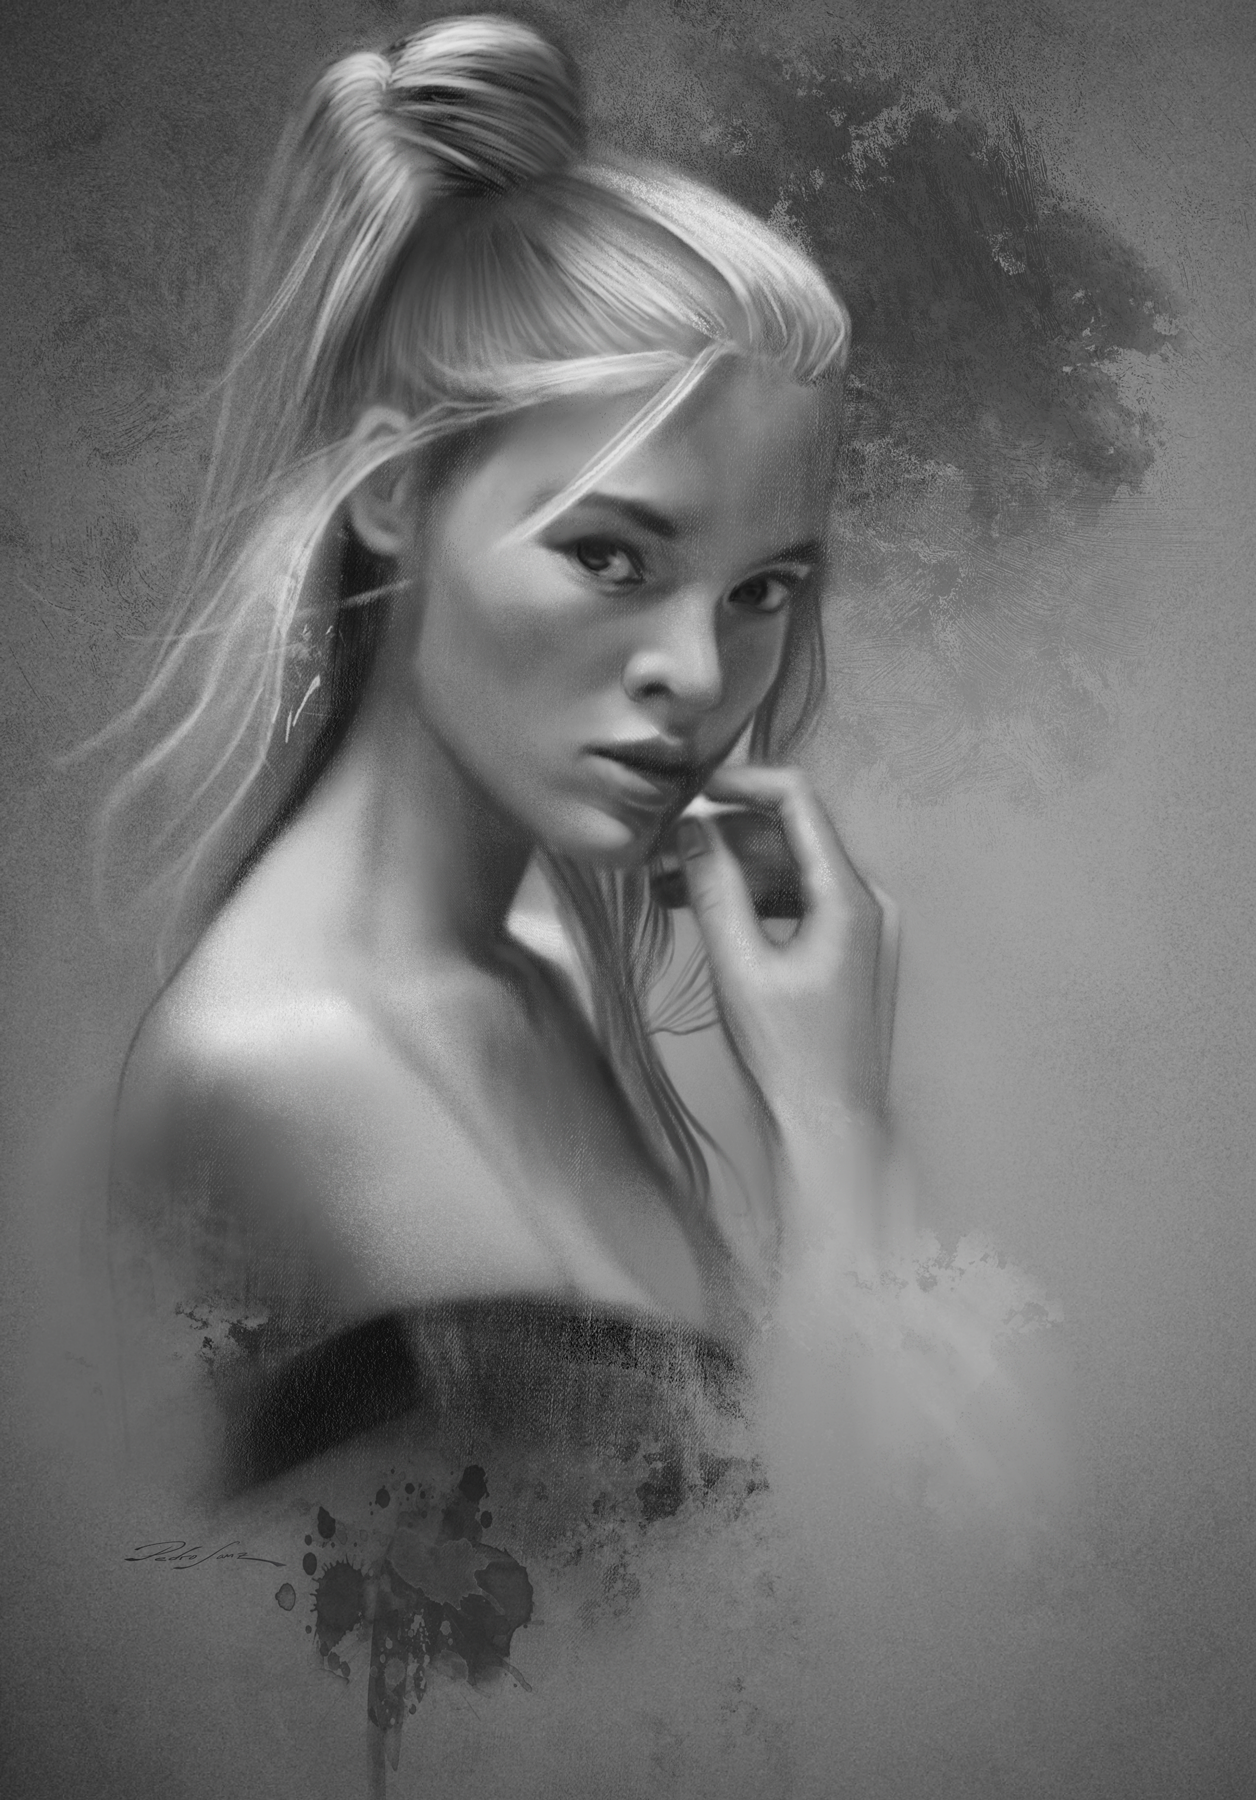 Pedro Sanz Gonzalez, digital portrait drawing using custom graphite brushes in Photoshop.